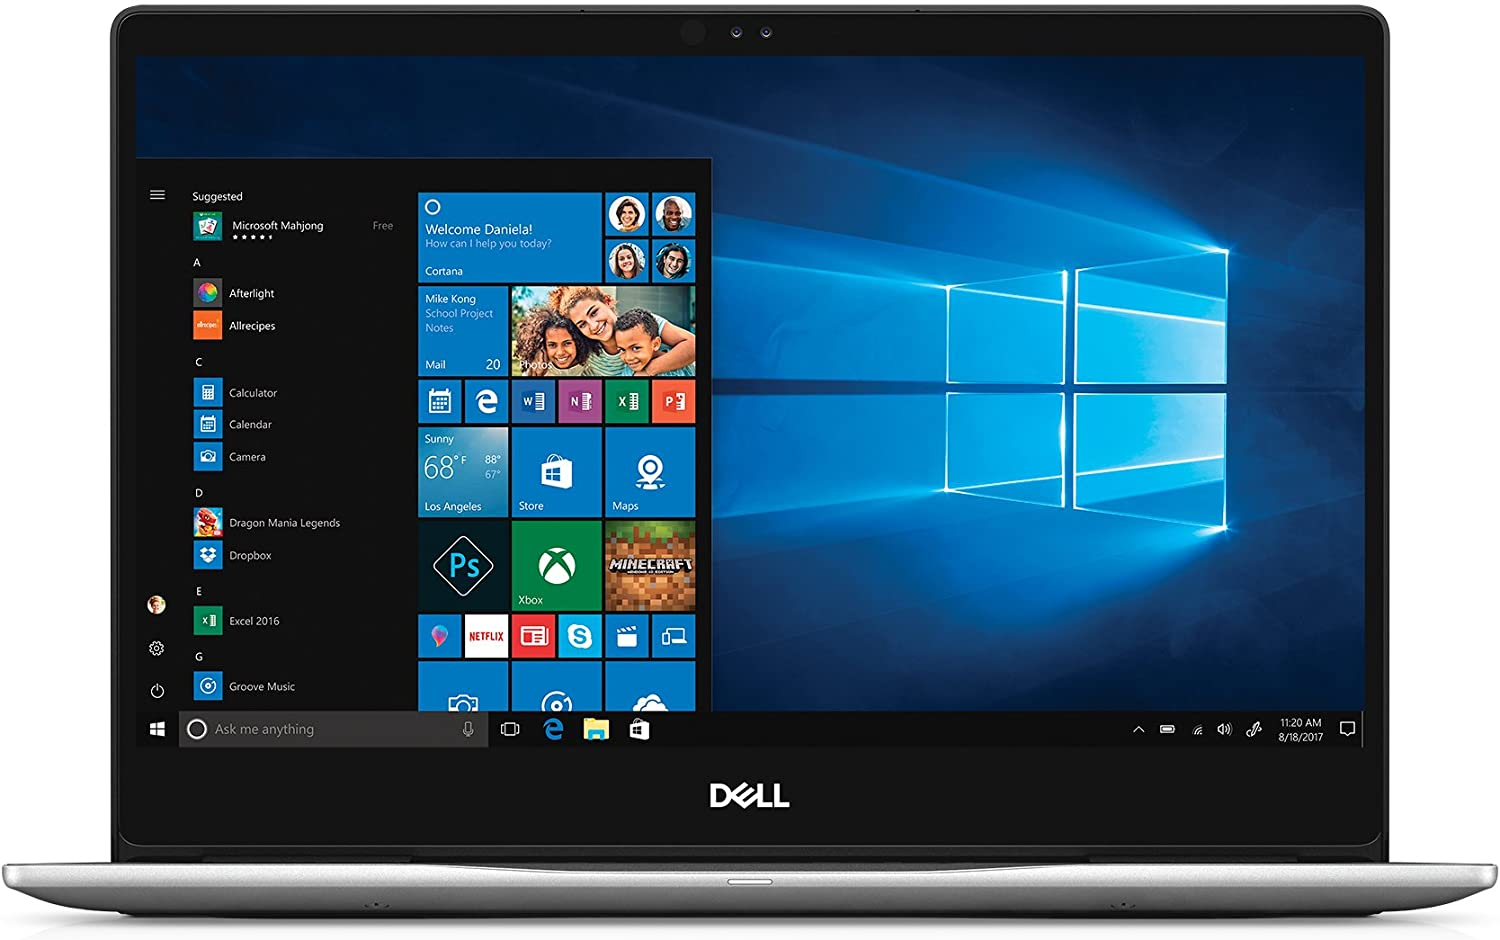 "Dell Inspiron 13 7000 7370 Laptop - (13.3"" Touchscreen IPS FHD (1920x1080), 8th Gen Intel Quad-Core i5-8250U, 256GB SSD, 8GB DDR4, Backlit Keyboard, Windows 10)"